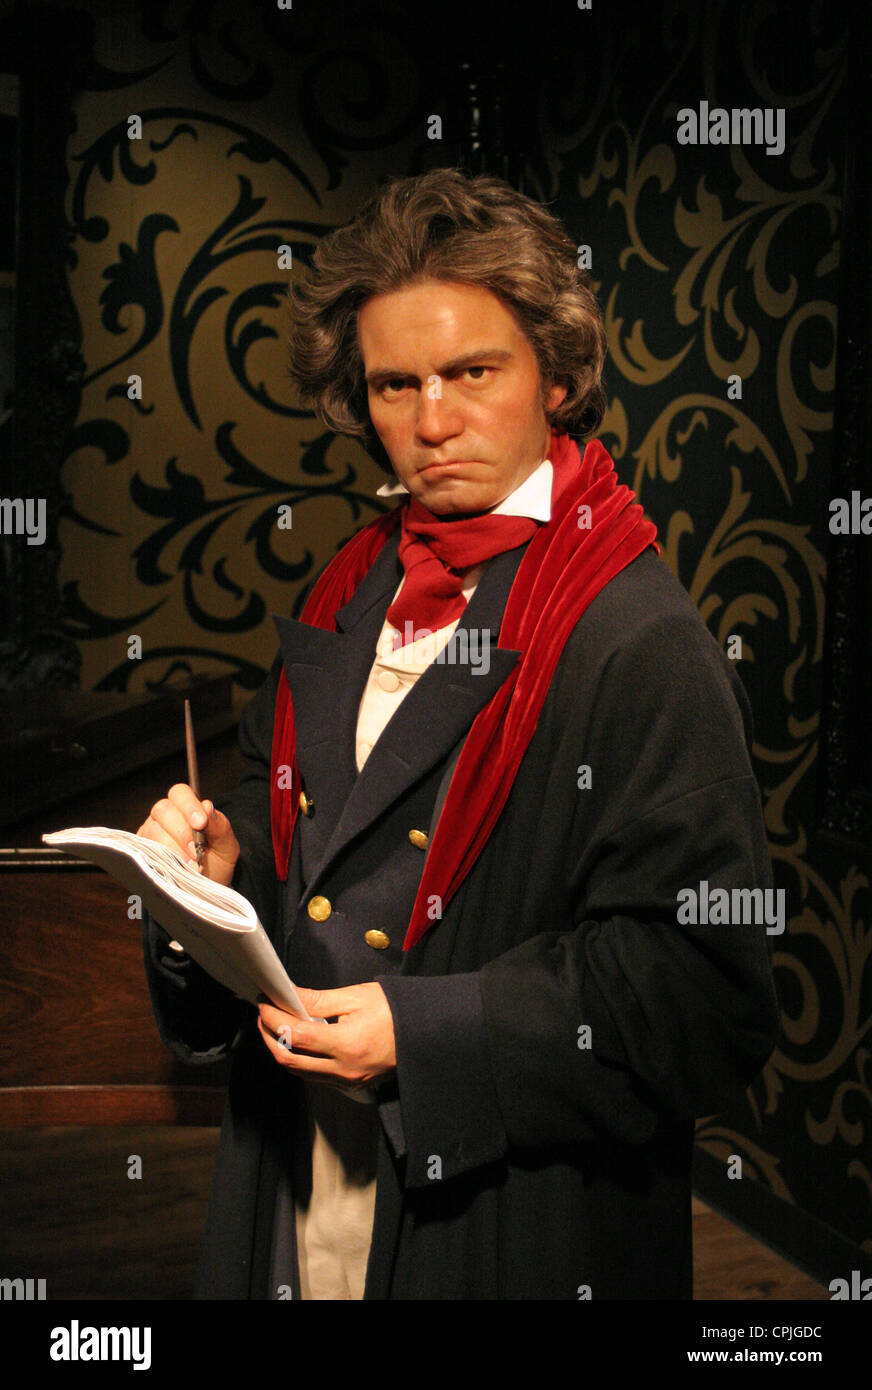 A wax figure of Ludwig van Beethoven in the wax works Madame Tussauds, Berlin, Germany - Stock Image